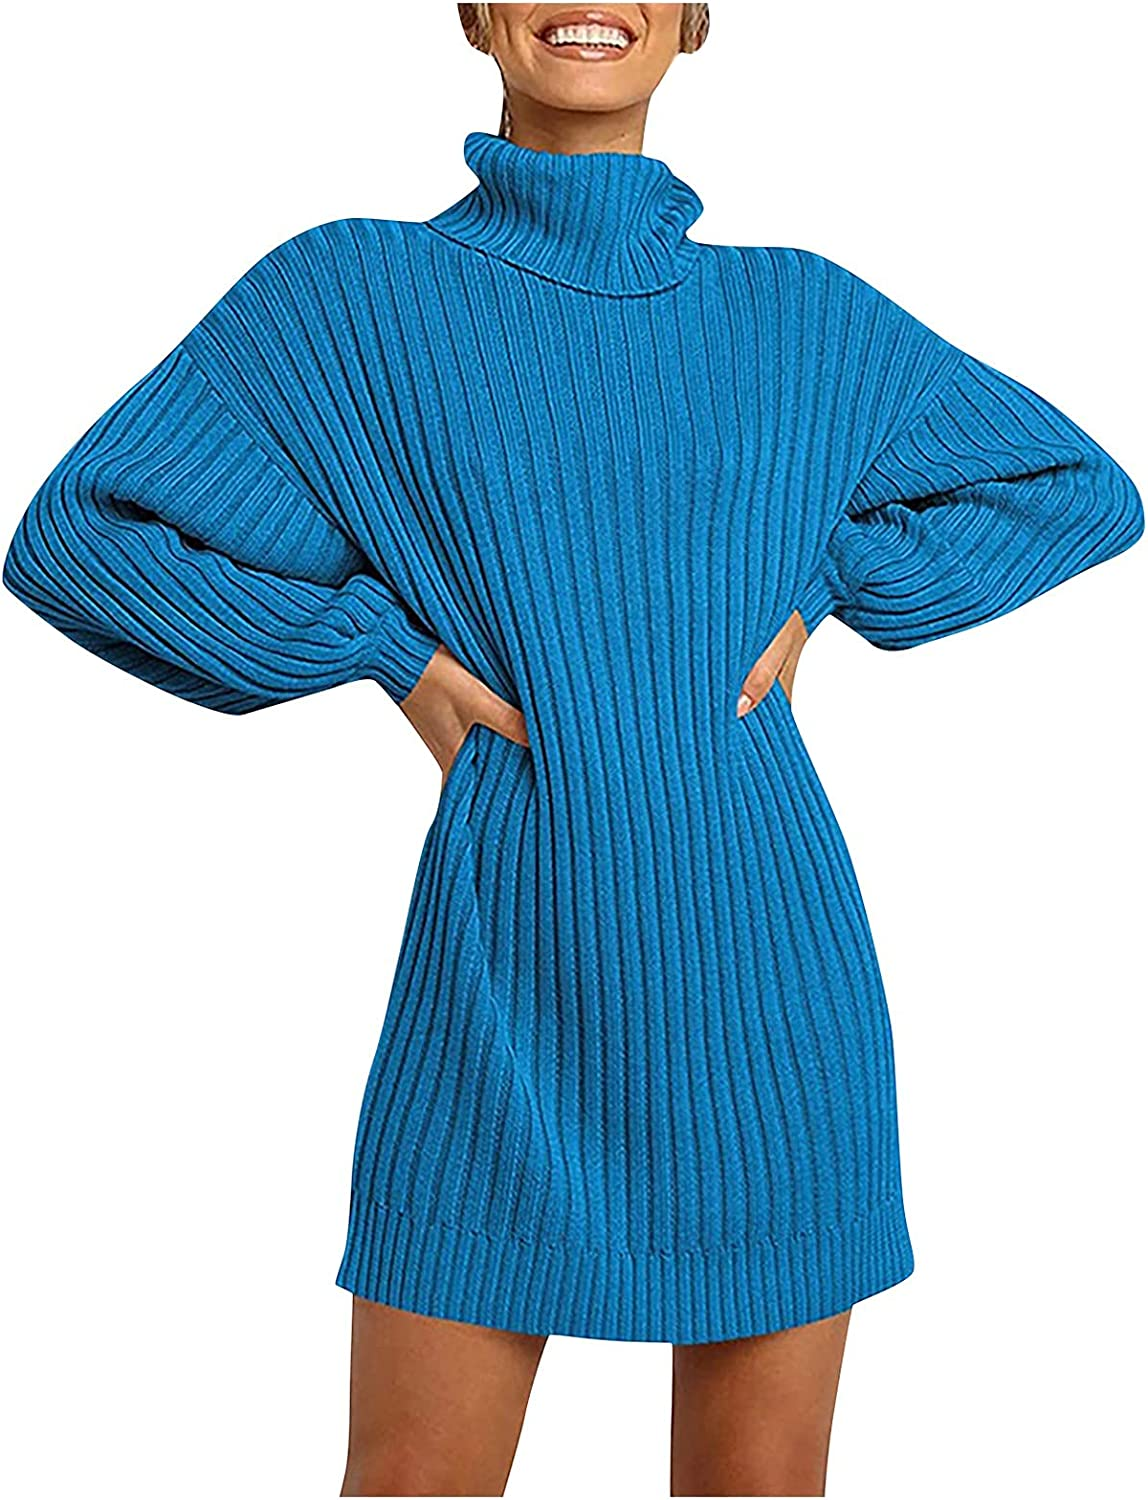 Casual Dresses for Women Turtleneck Solid Color Sweater Fashion Solid Color Shirt